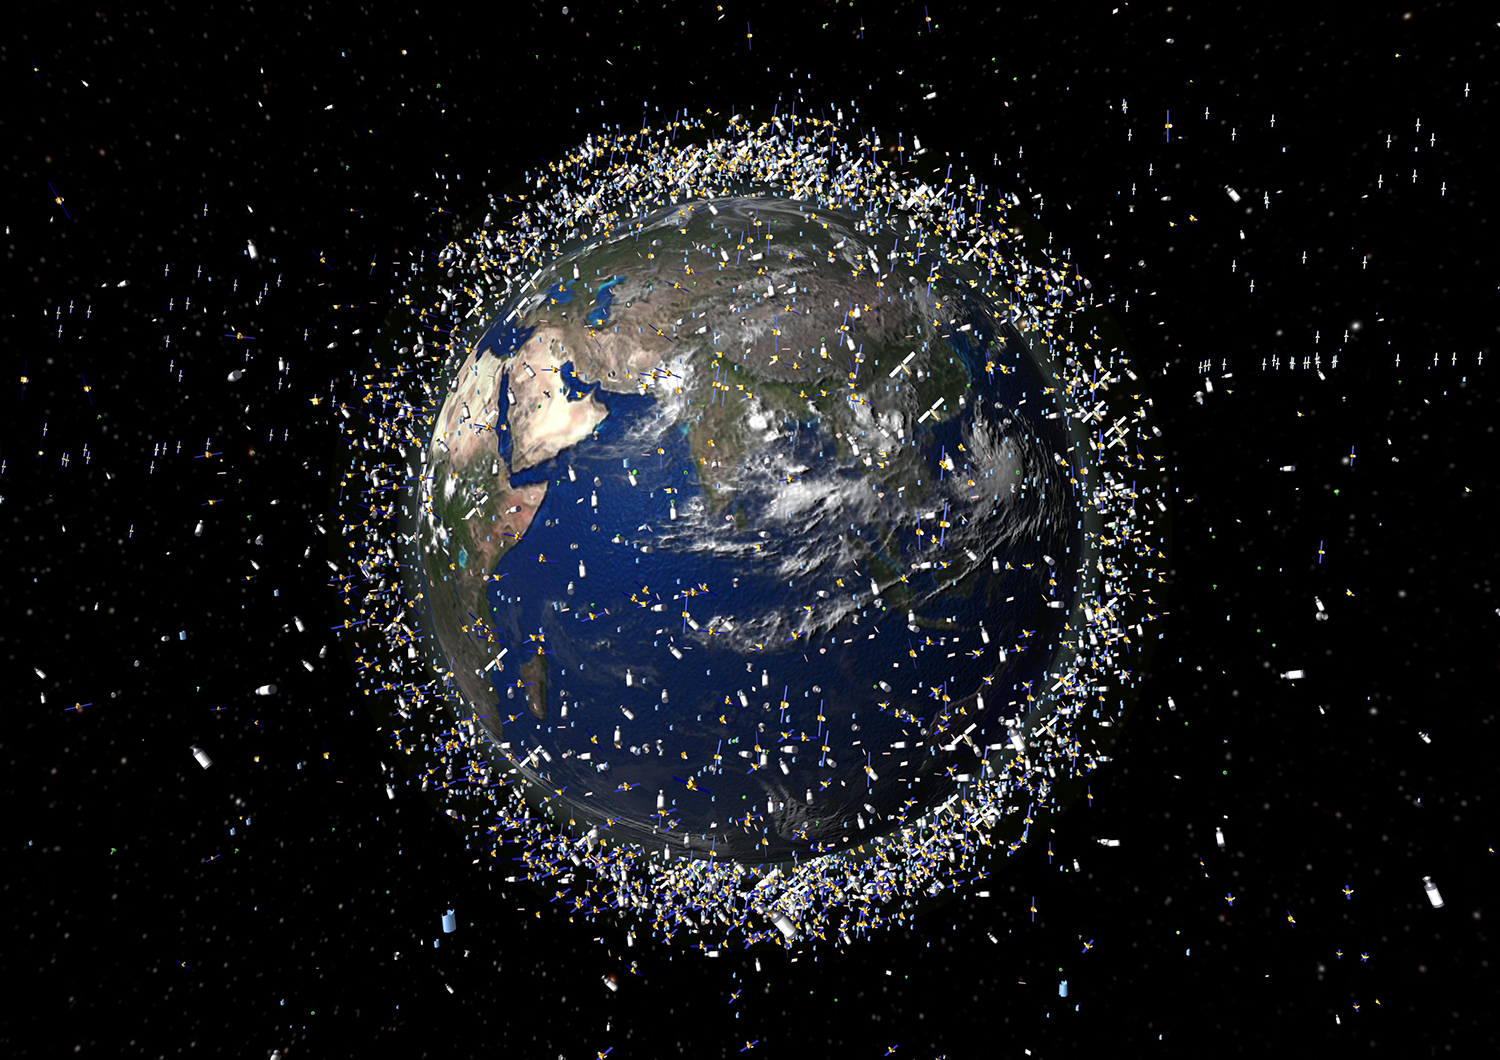 A discarded Chinese rocket stage and a Soviet-era satellite nearly collided over Earth overnight. The collision would have created a huge amount of new space debris and made our current space junk problem even worse. As we continue to launch more and more sat…